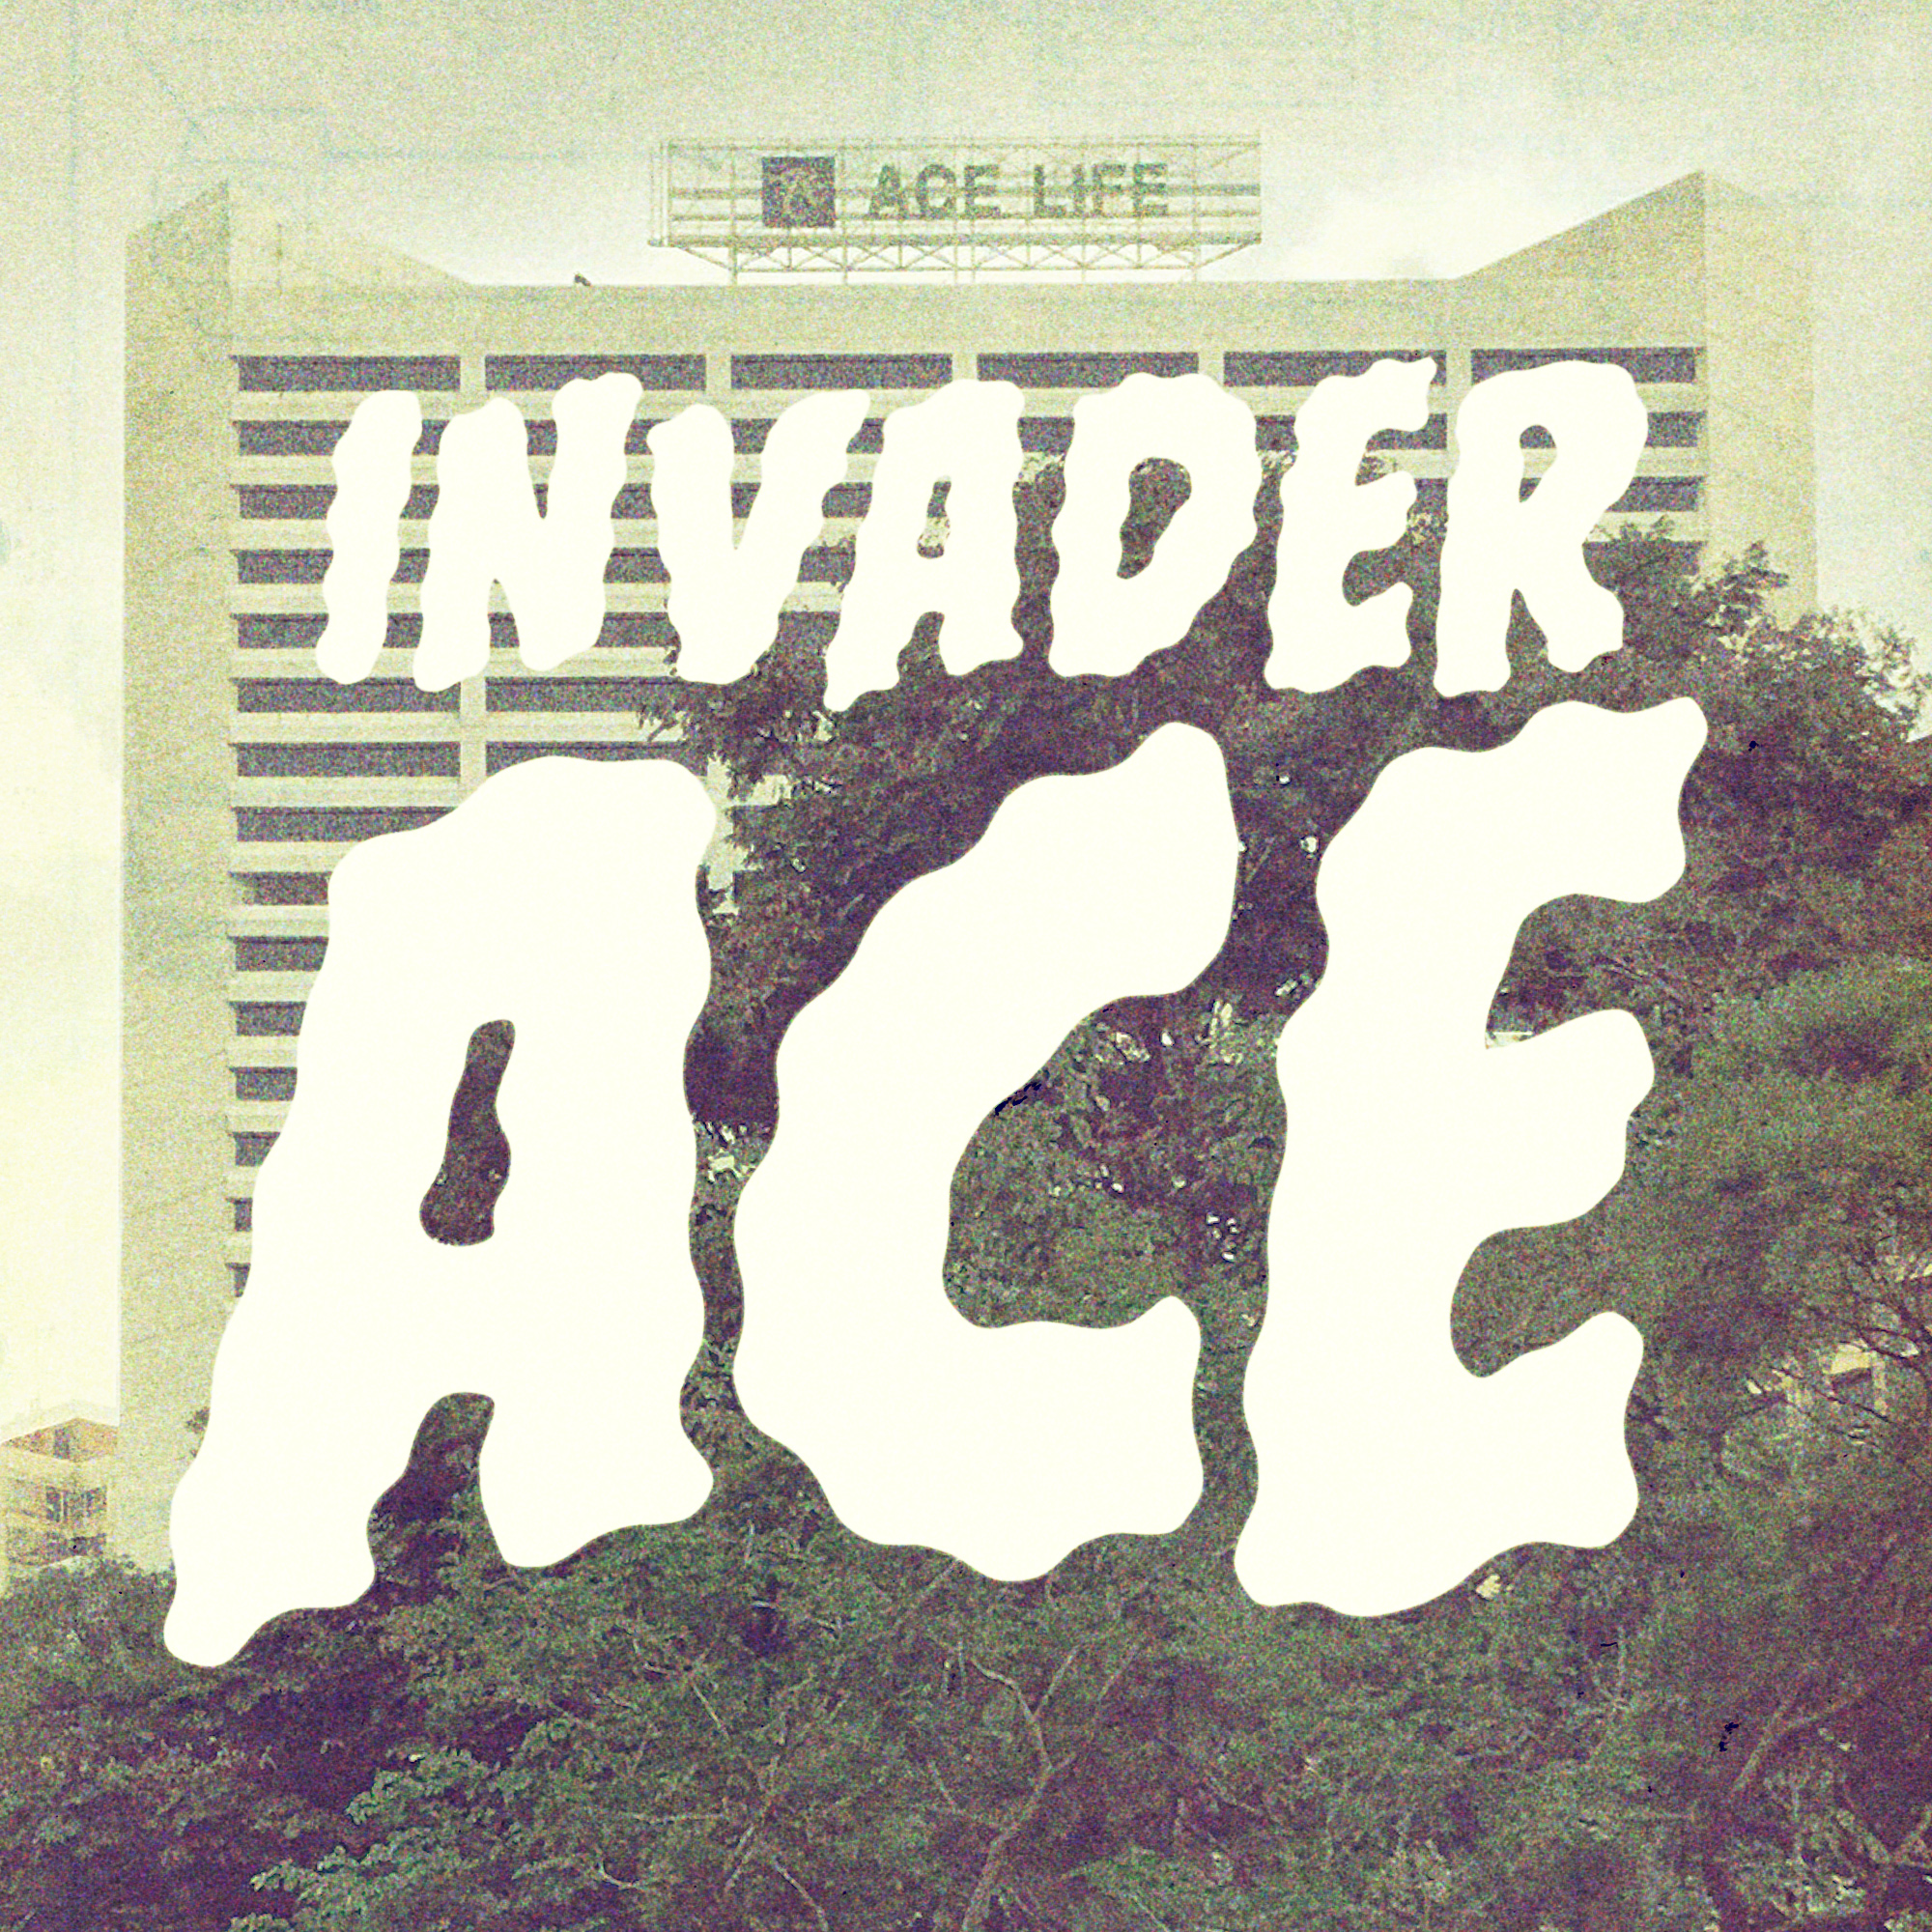 When you feel january is too cold and dark, why not listen to some Tropical Tuba Techno to conjure up memories of sunny days, beaches and long island ice teas. ACE LIFE is a new two track Ep by the Norwegian/Swedish experimental electronic outfit INVADER ACE. It sounds like a happy DIY blend of Mr. Oizo, Todd Terje and Cuban math rock.